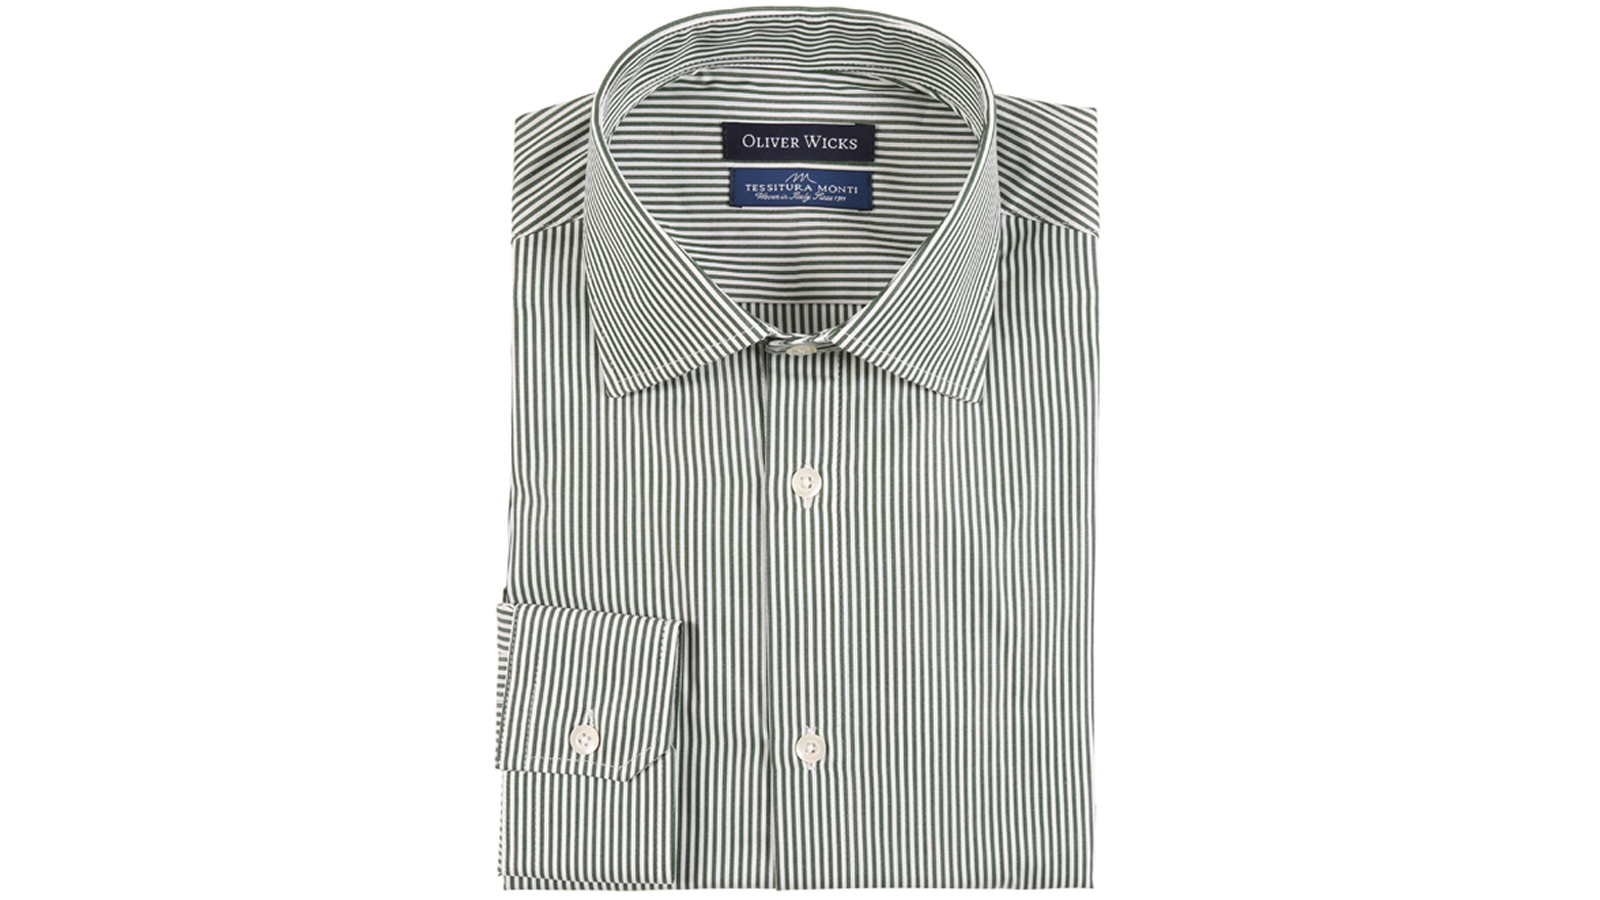 Green Striped Two-Ply Pinpoint Cotton Shirt - slider image